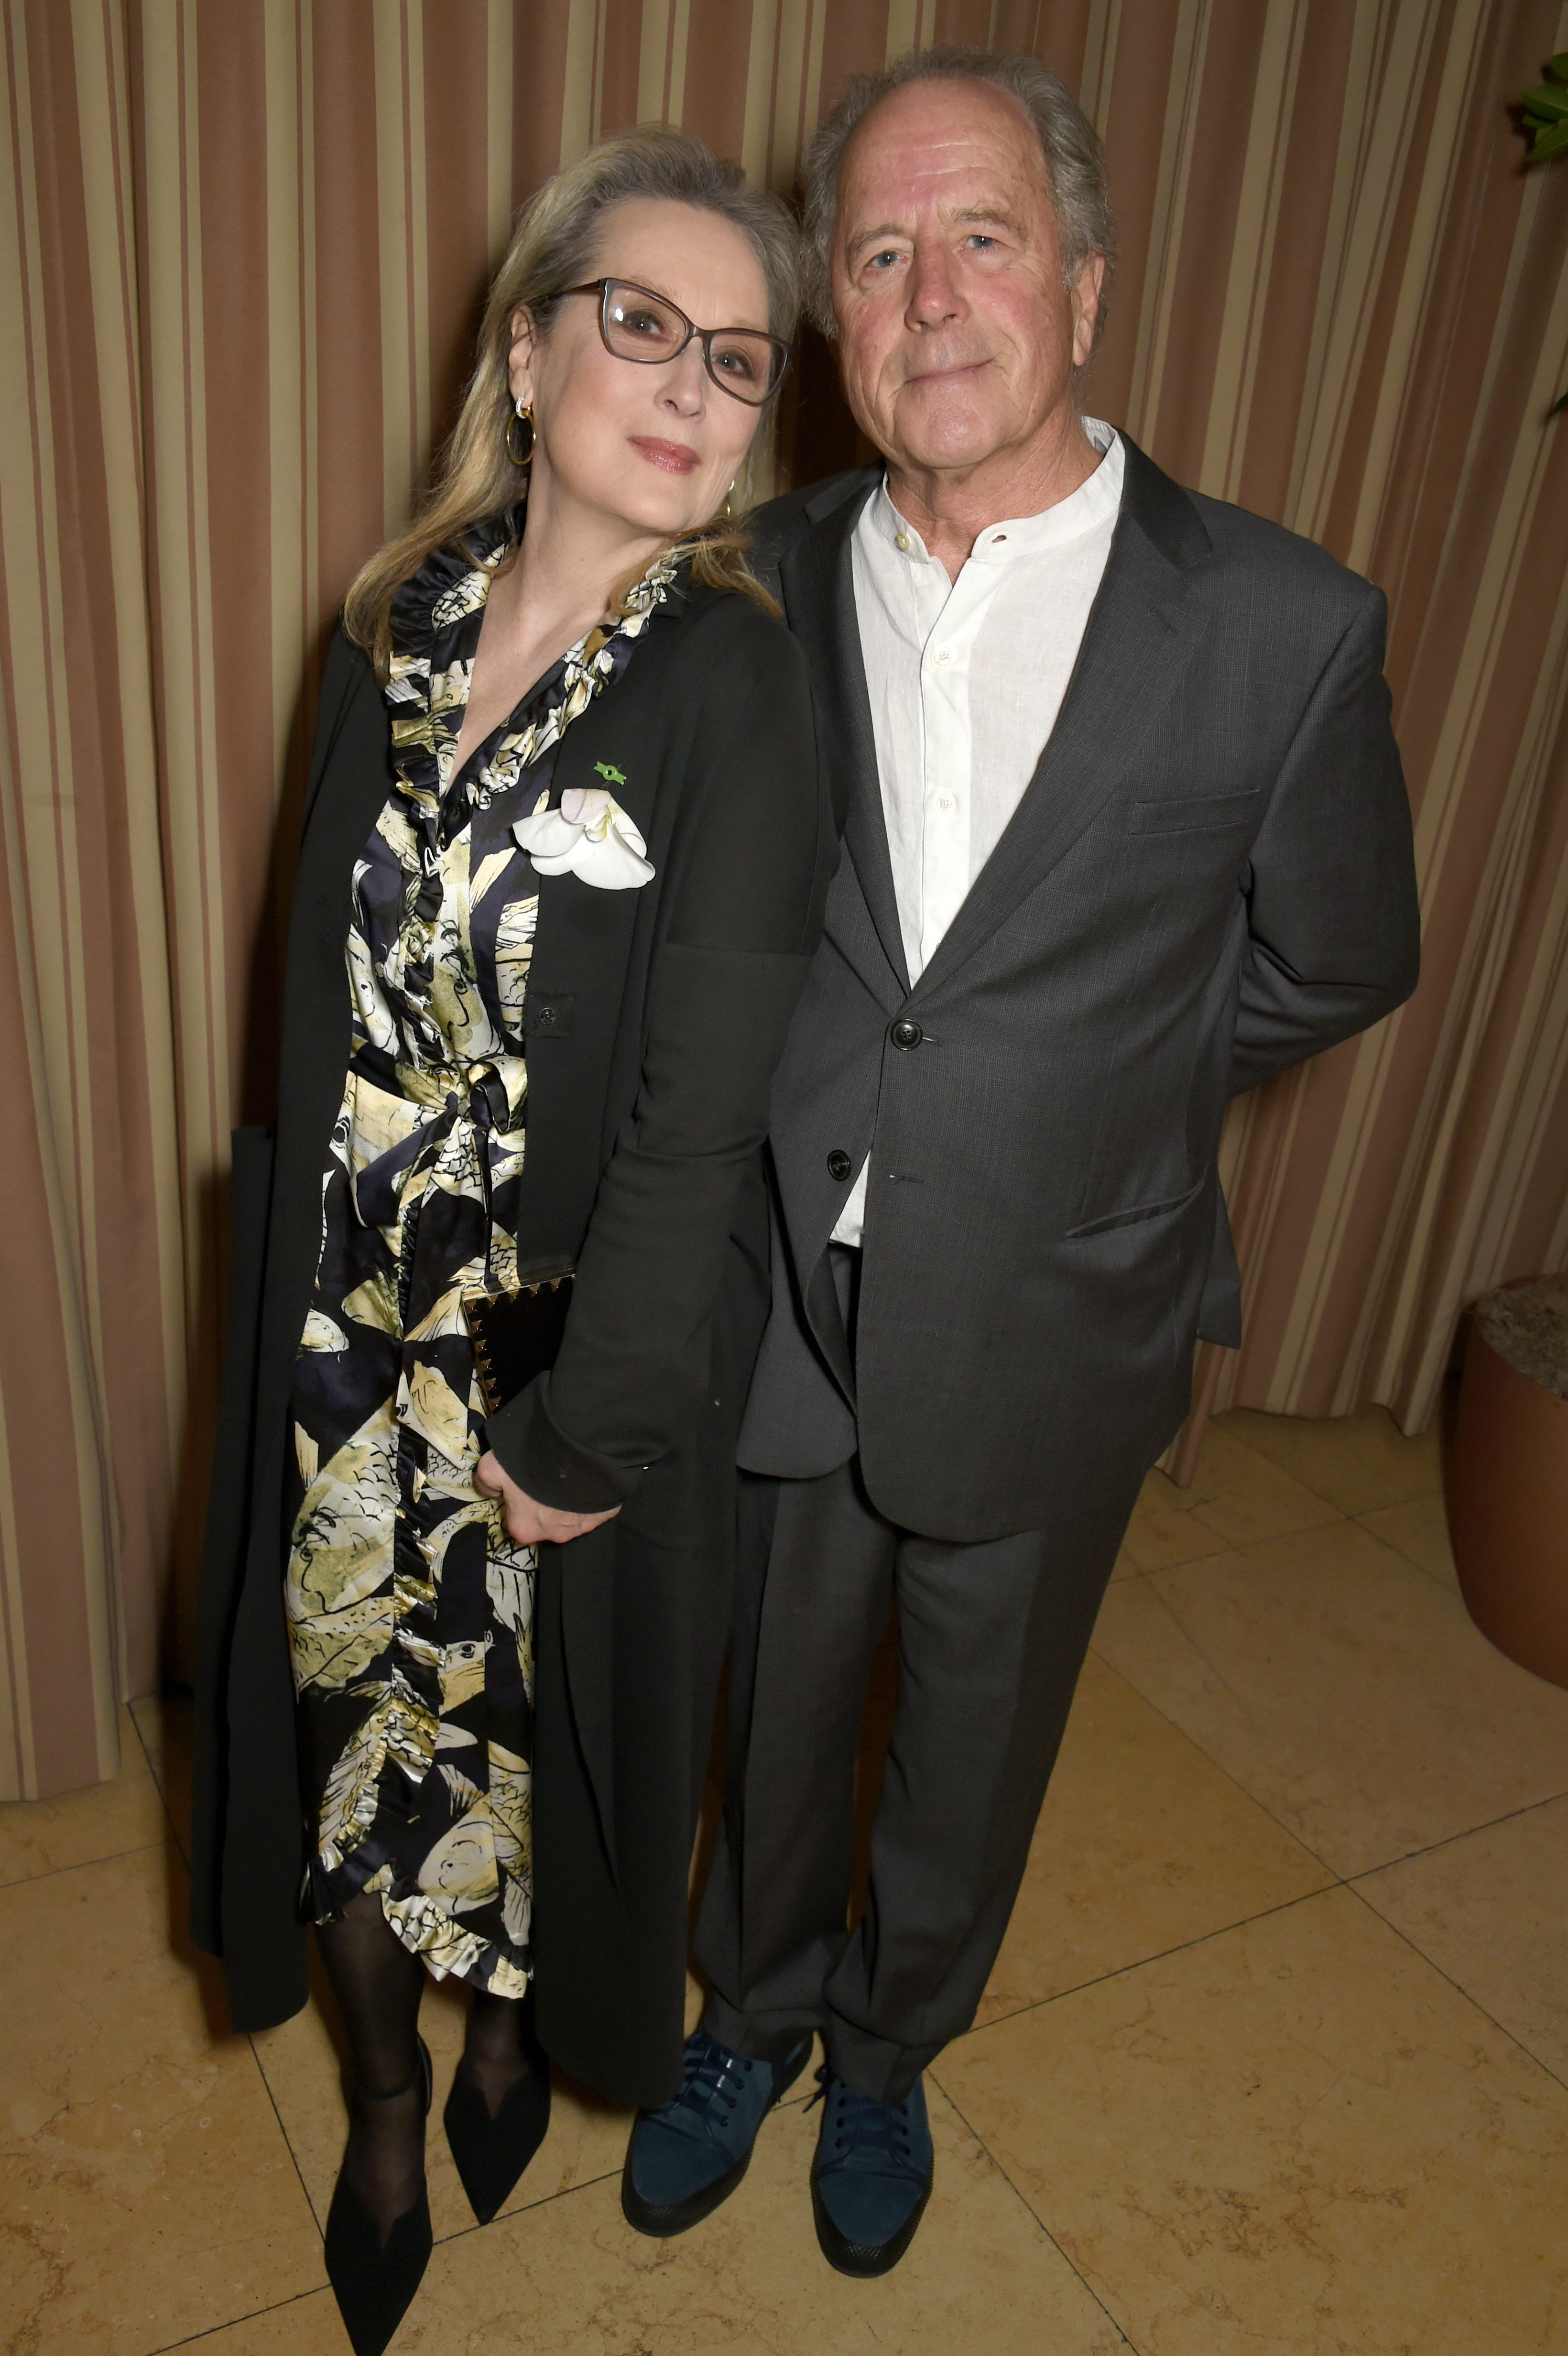 Meryl Streep and sculptor Don Gummer attend a dinner to celebrate The GCC and The Journey To Sustainable Luxury on February 24, 2017 | Photo: GettyImages